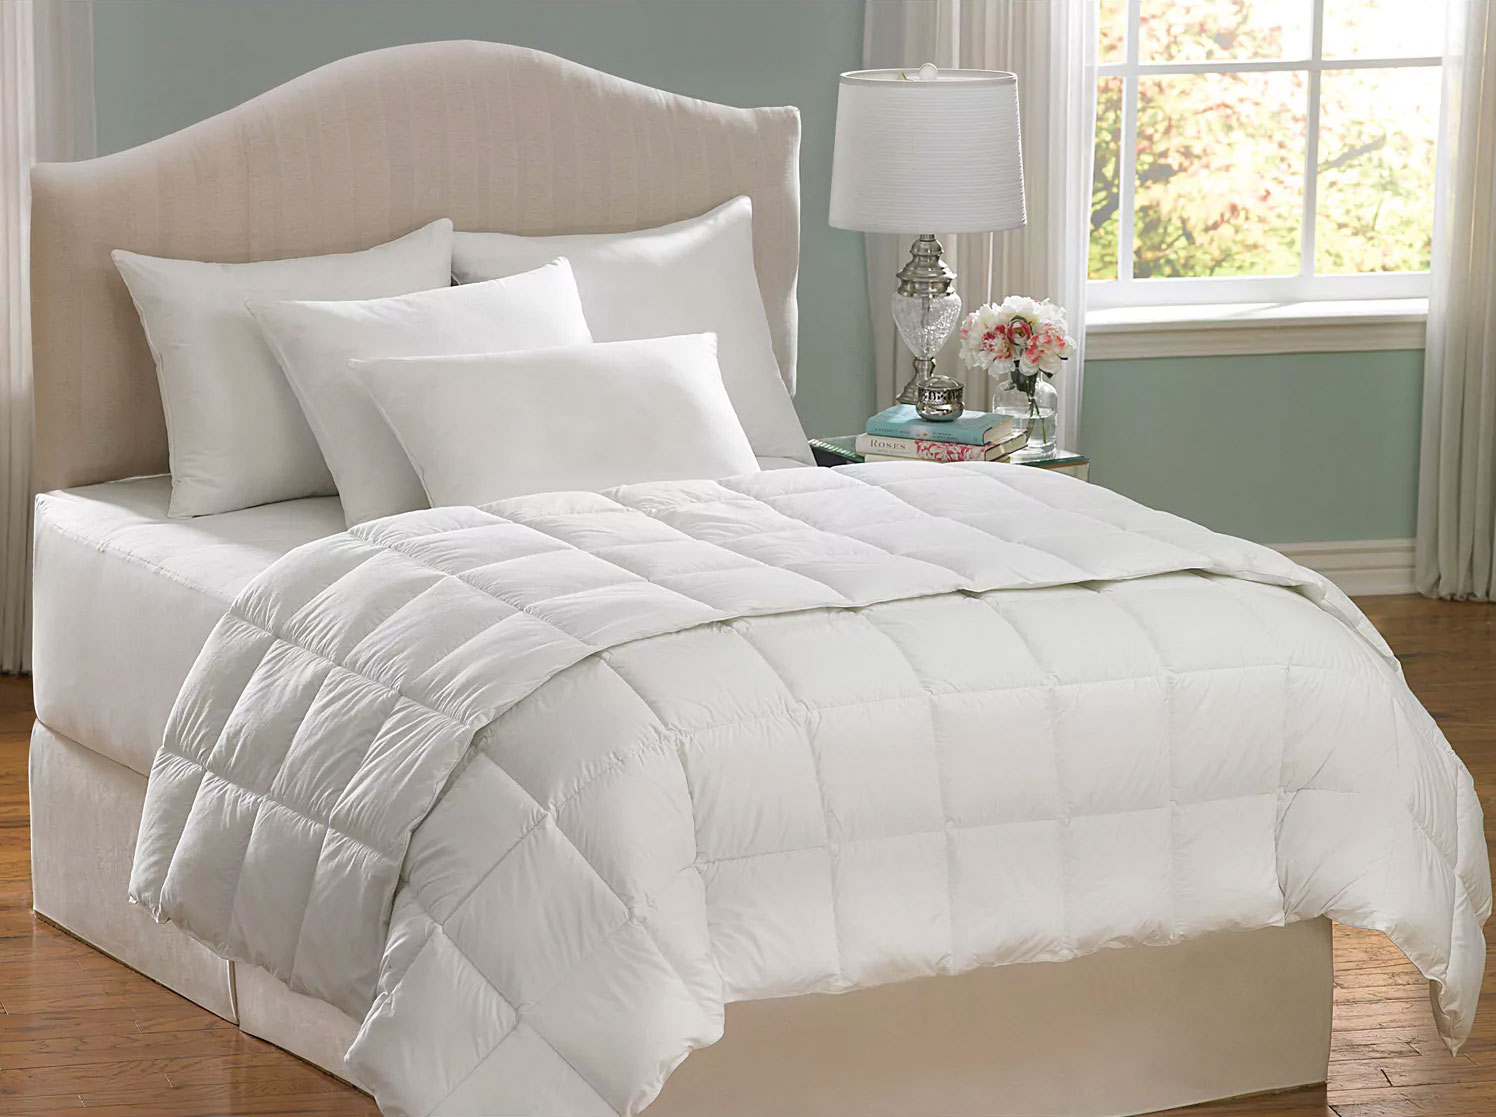 allerease hot water washable comforter review price and features  - allerease hot water washable comforter review price and features  prosand cons of allerease hot water washable comforter